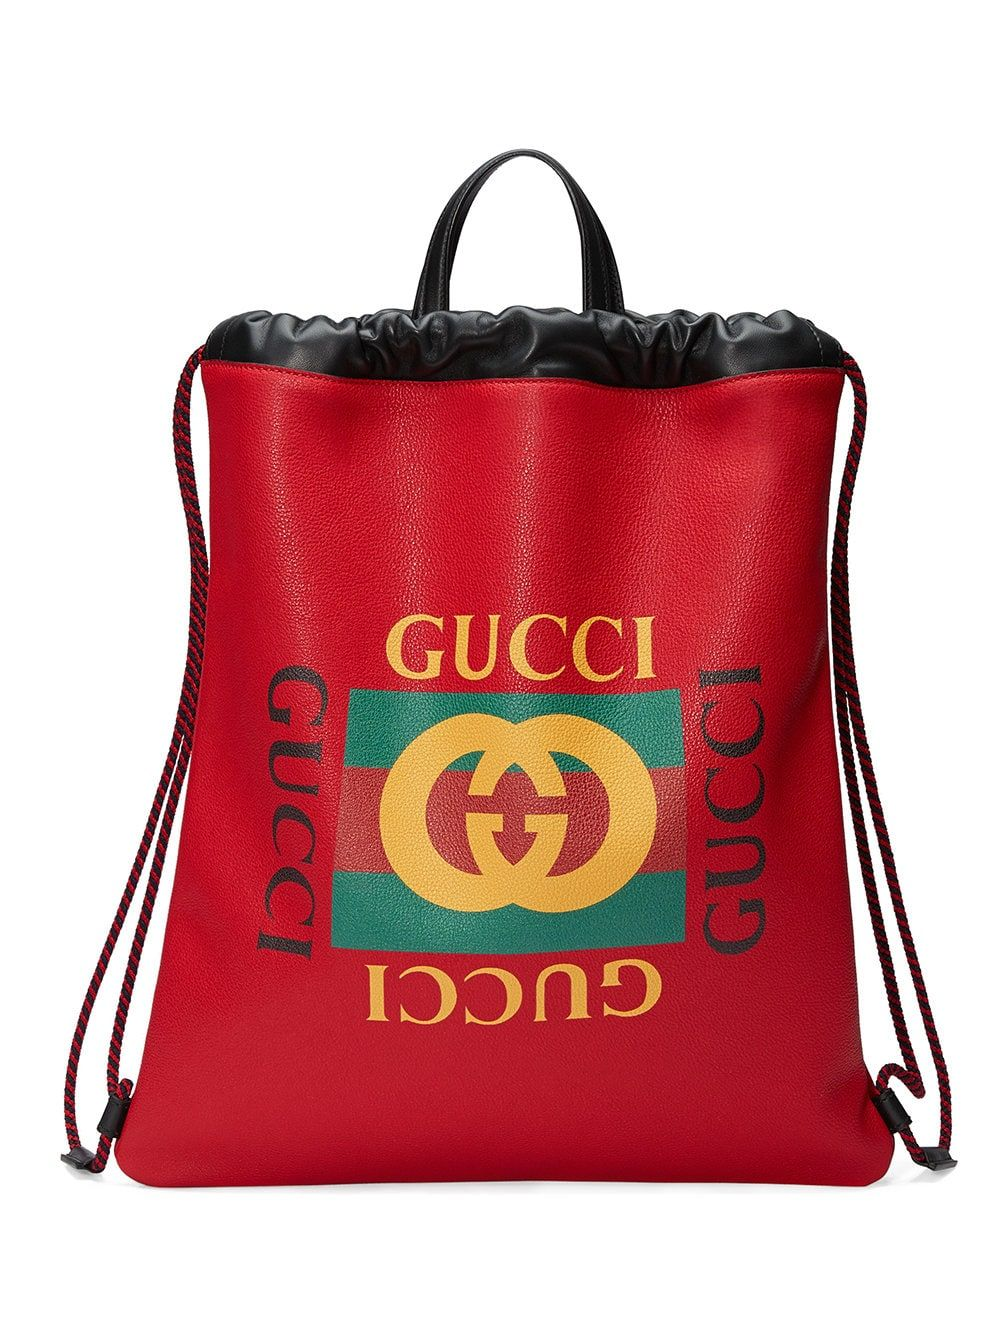 9cae5d0d6636 Gucci Gucci Print Leather Drawstring Backpack | bags-dope backpack ...